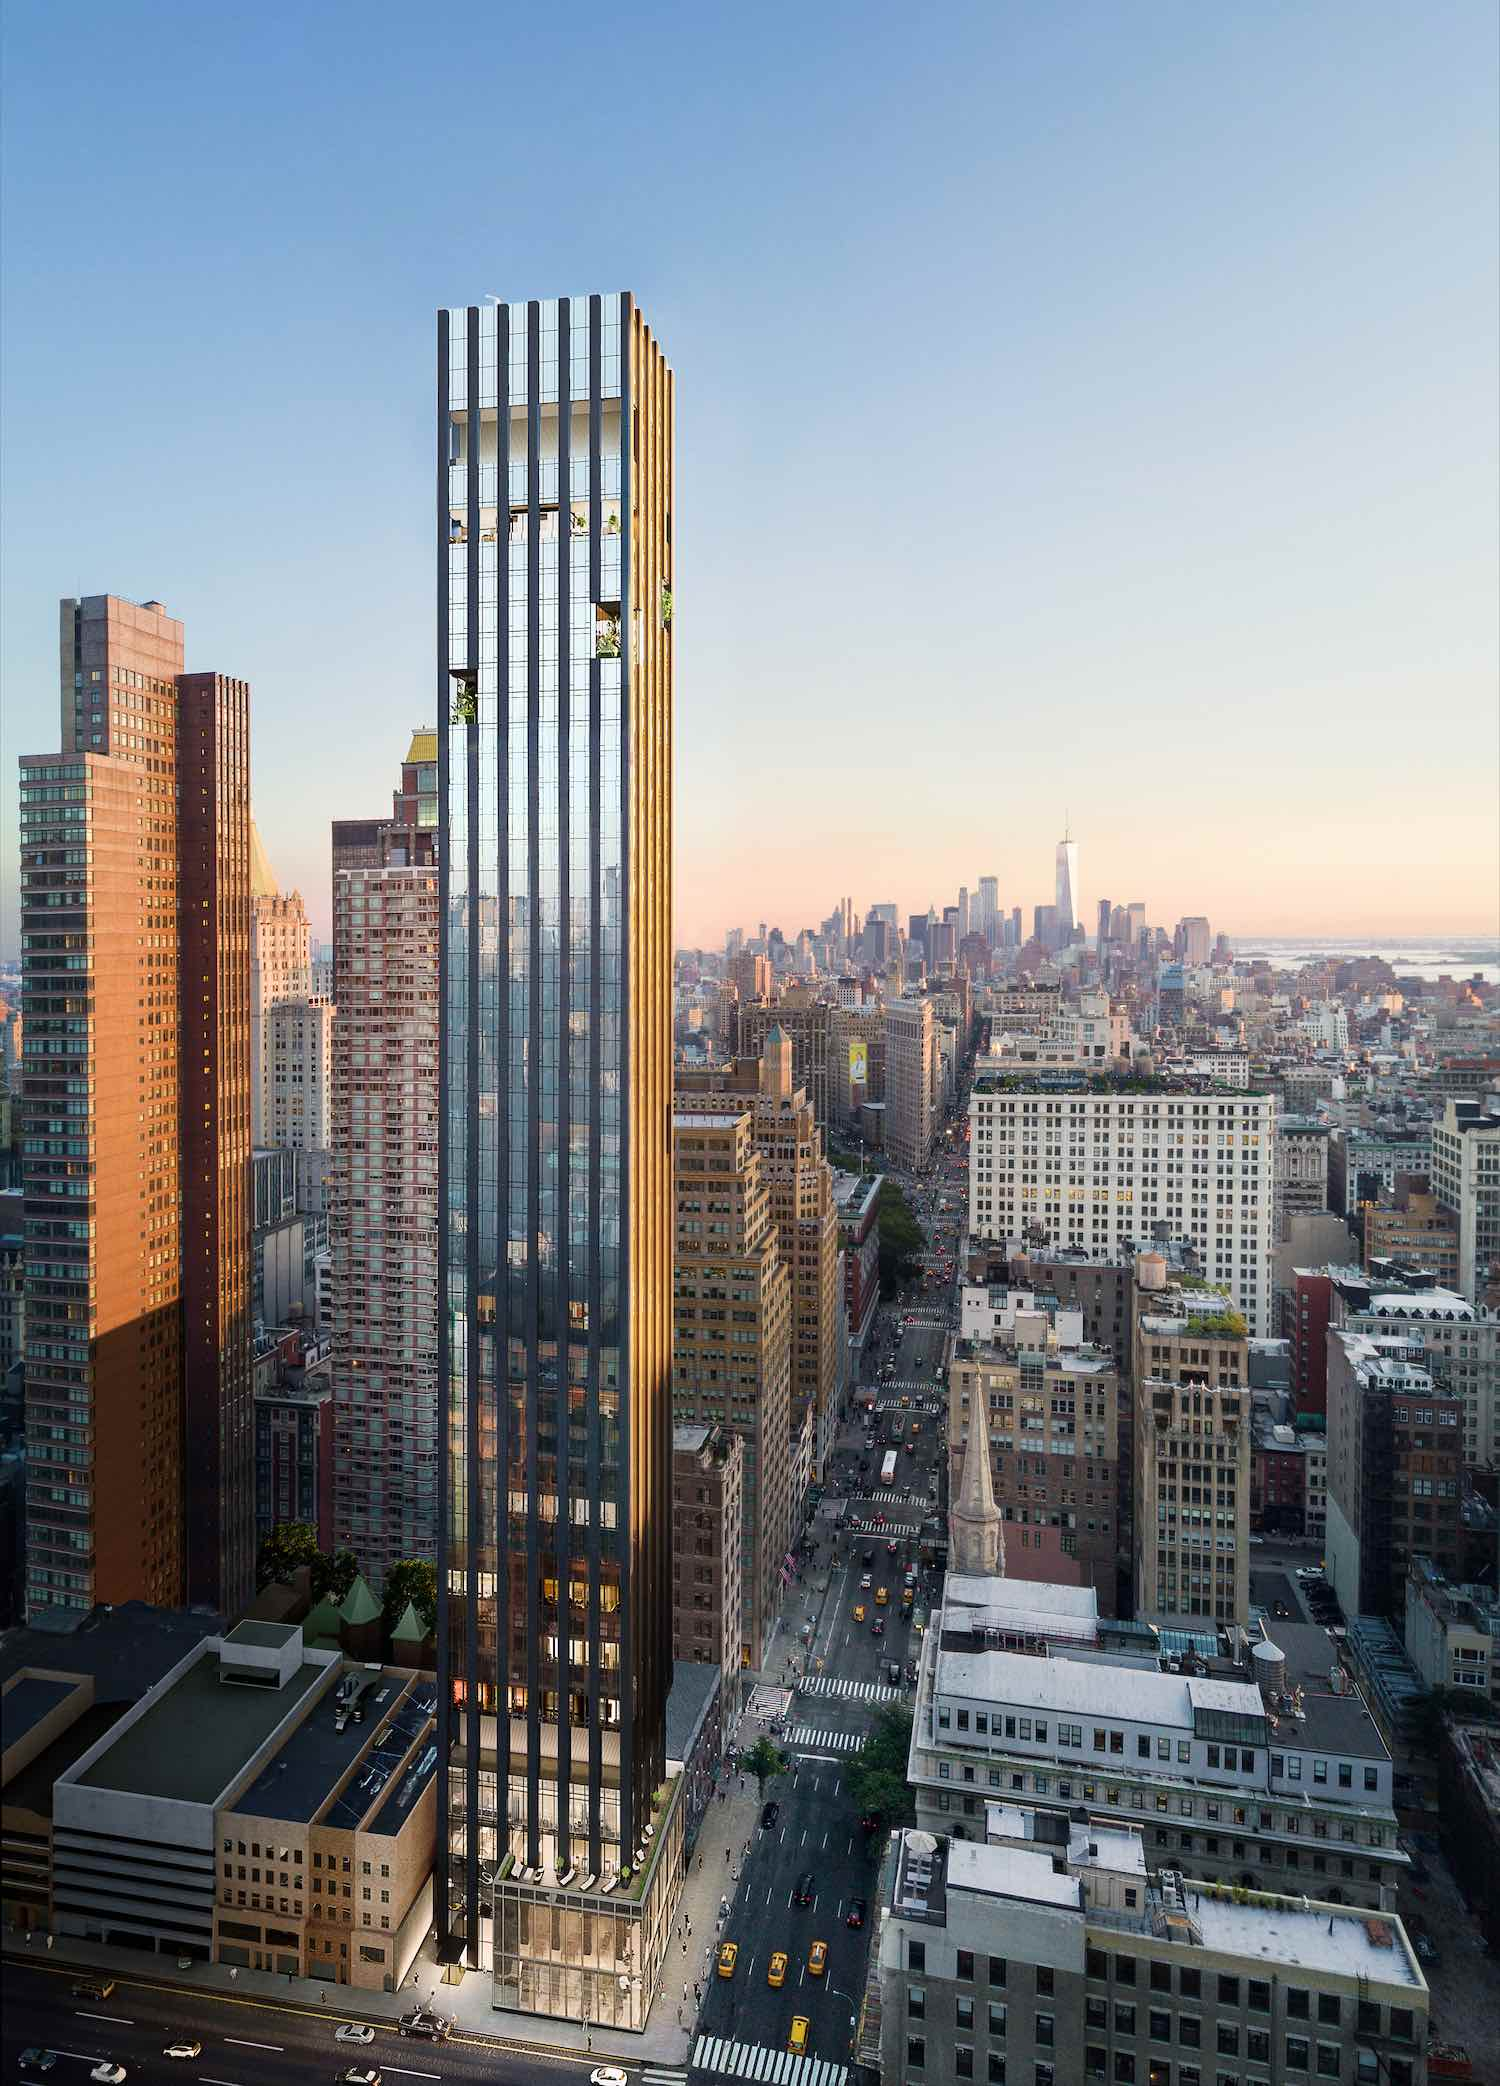 277 Fifth Avenue by Rafael Viñoly Architects © Rafael Viñoly Architects.